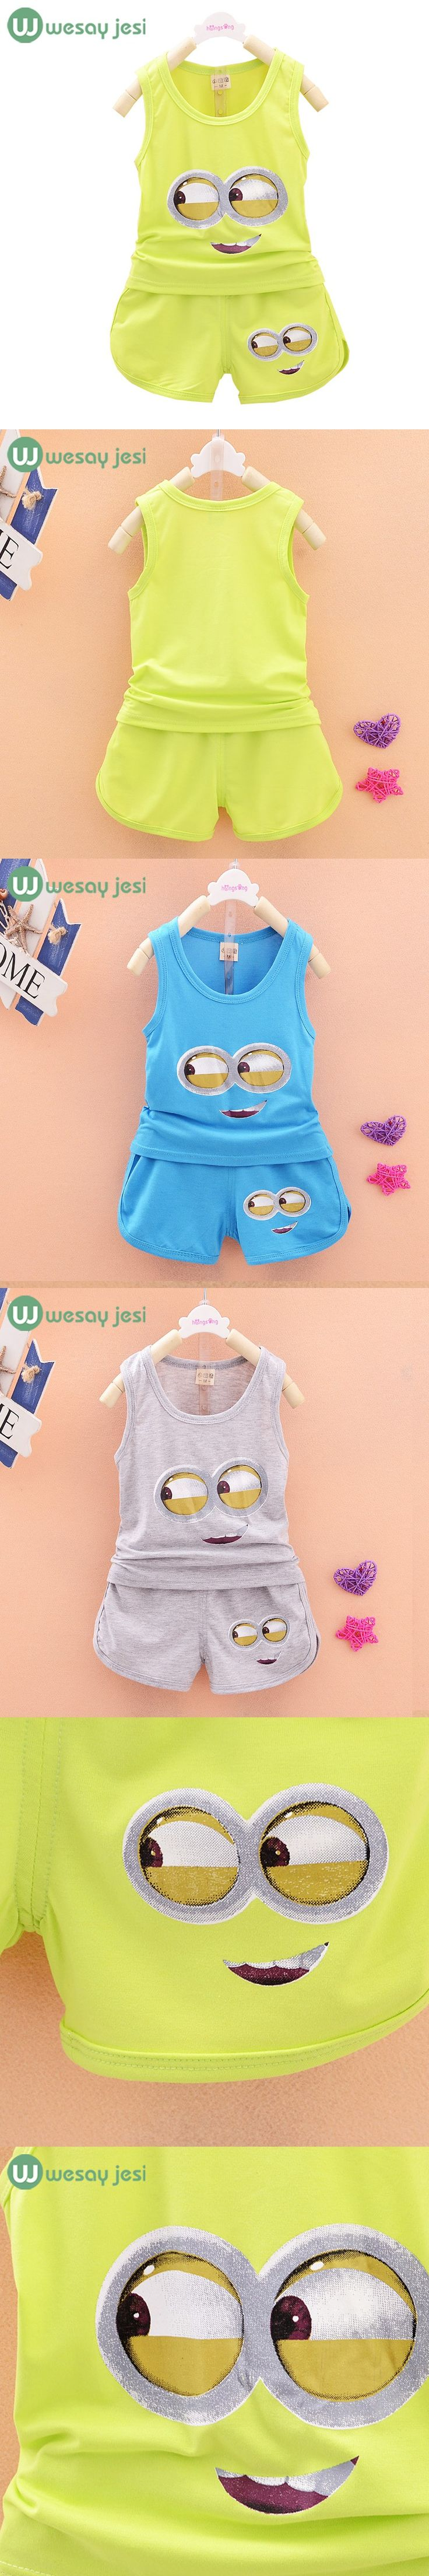 2016 New baby baby clothing cotton 2pcs suit Vest + Pants cartoon casual kids minions suits infant girl children clothes set